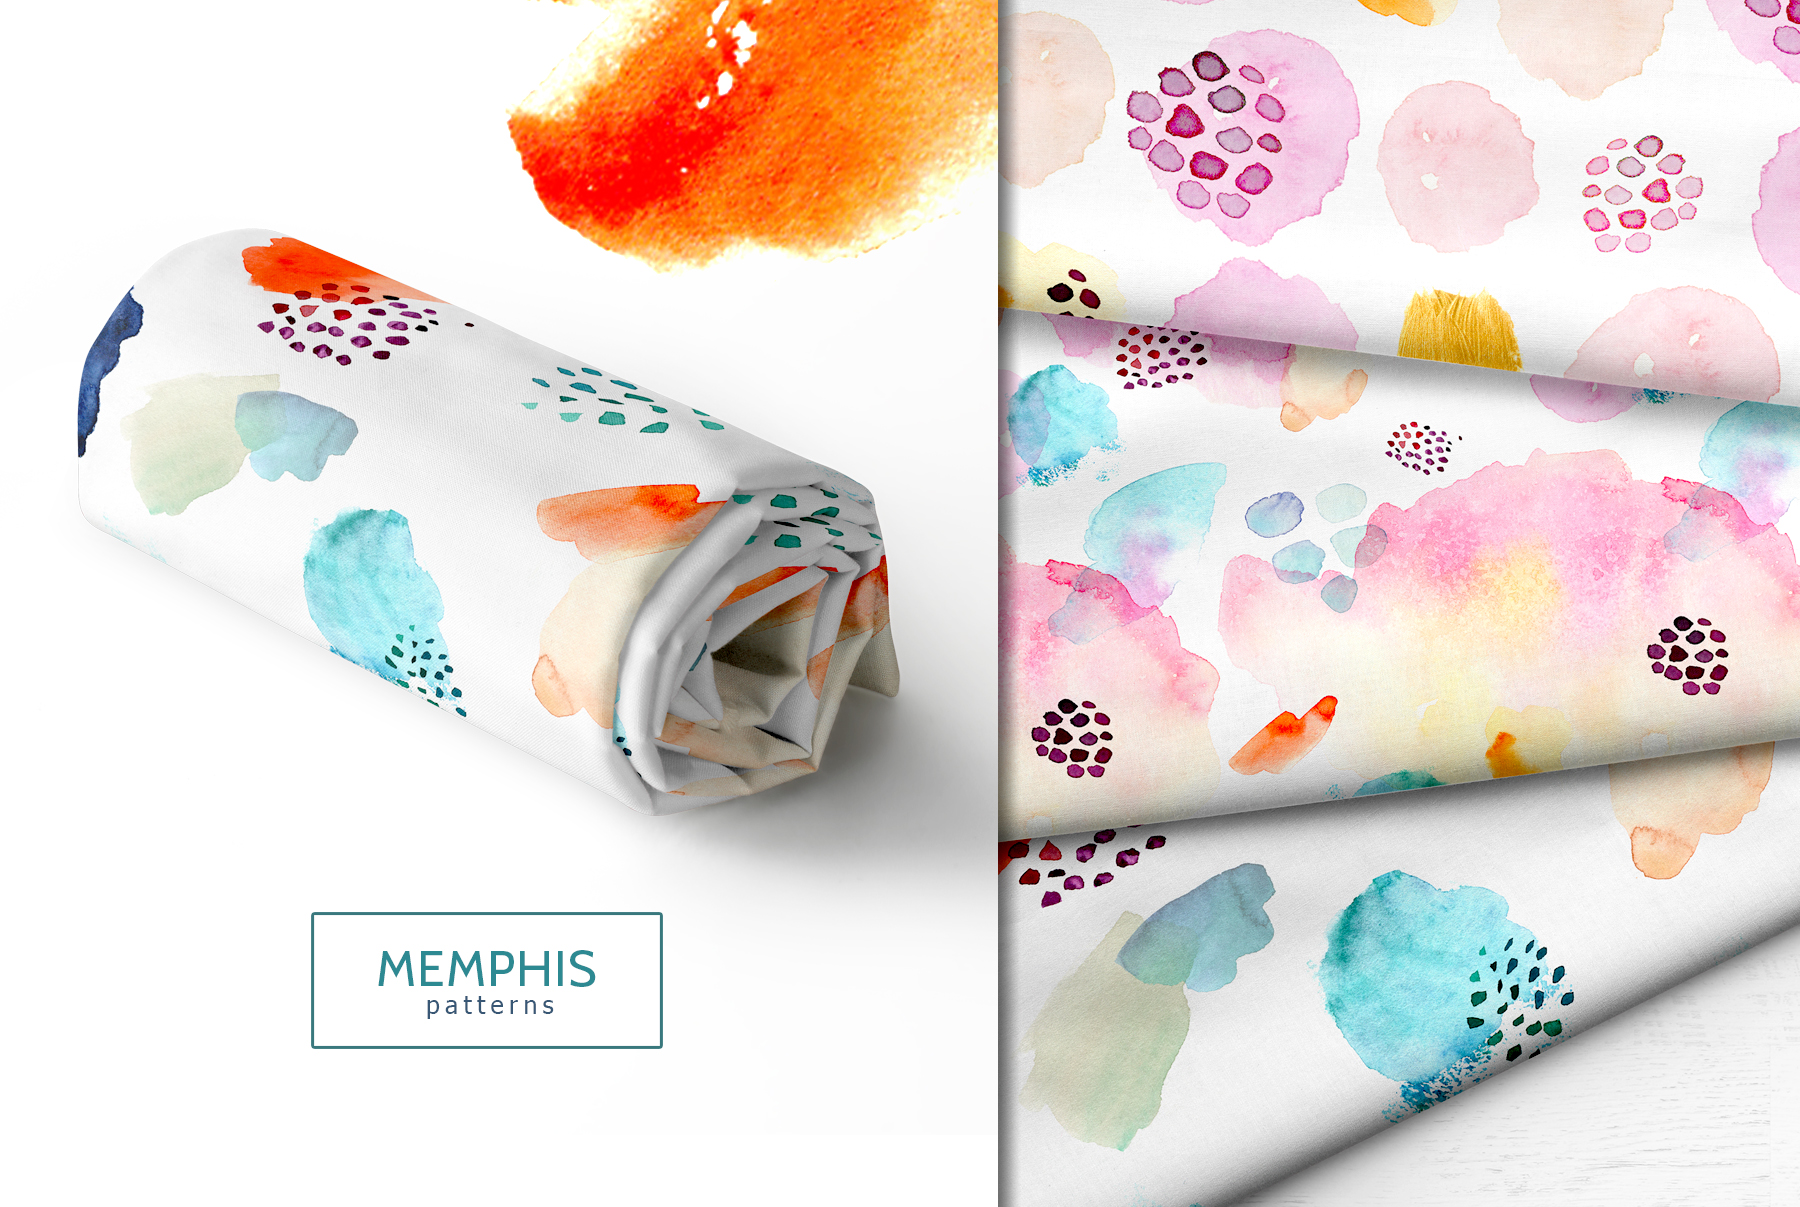 Watercolor memphis patterns & shapes example image 2